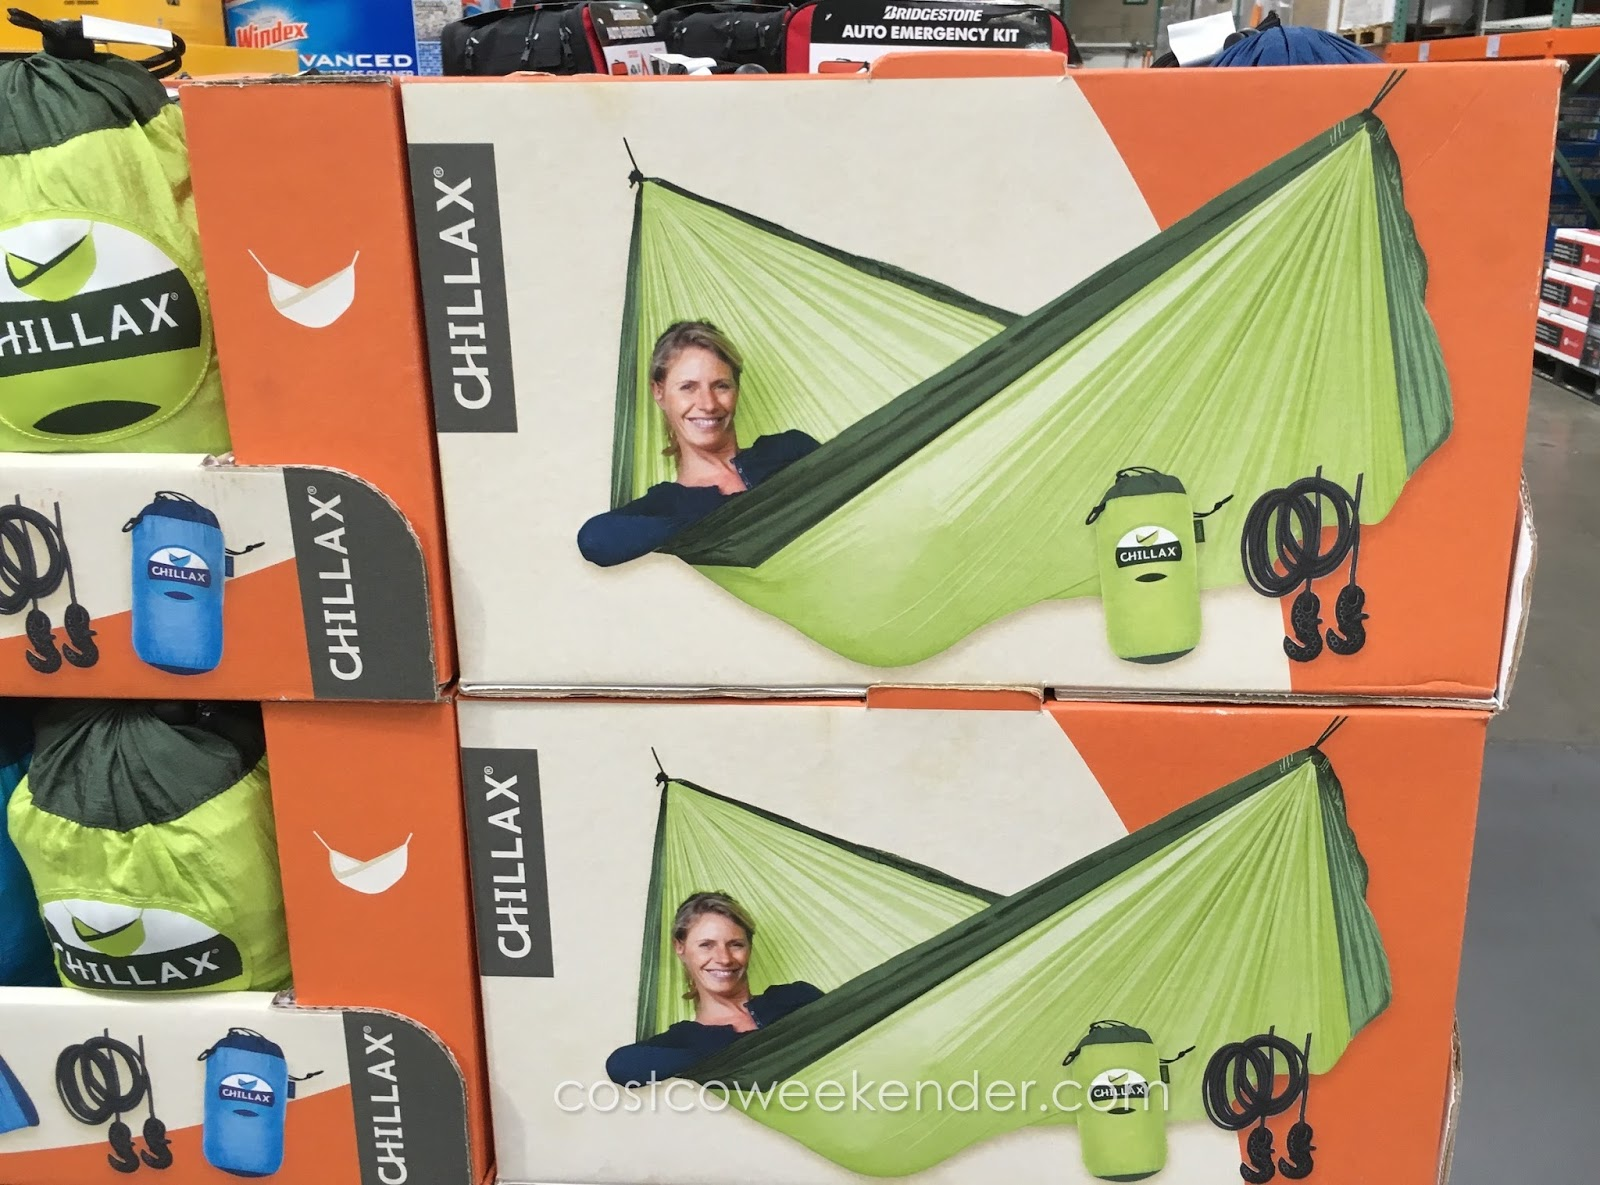 relax in  fort in the chillax double travel hammock cclh20 33 chillax parachute silk double travel hammock cclh20 33   costco      rh   costcoweekender